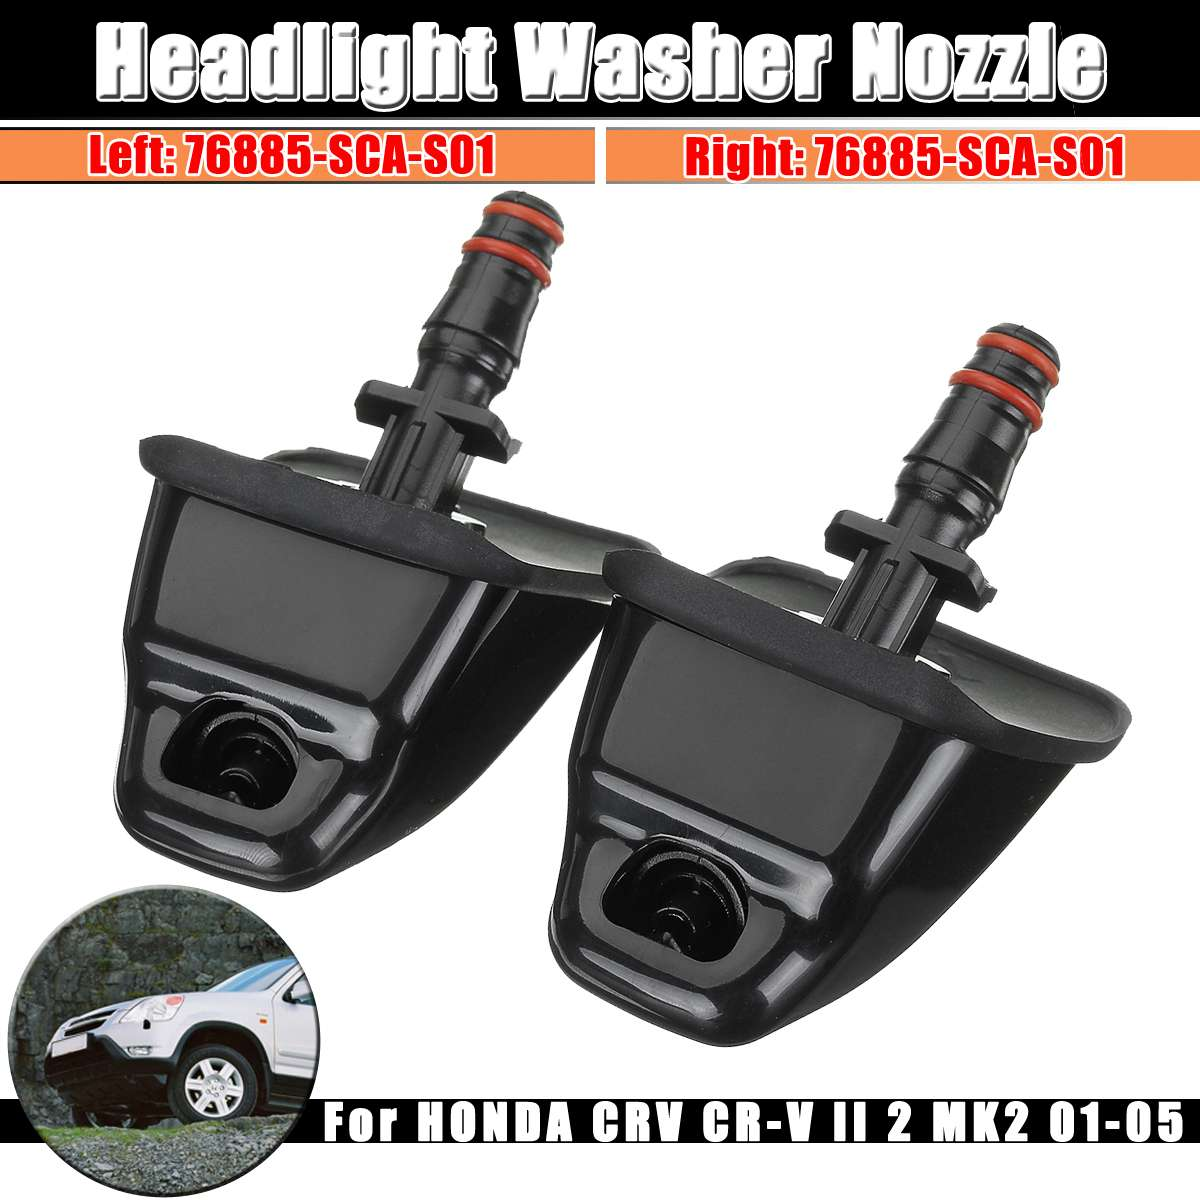 1pcs Left / Right Headlight Washer Nozzle Headlamp Sprayer For HONDA For CRV For CR-V II 2 MK2 2001 2002 2003 2004 2005